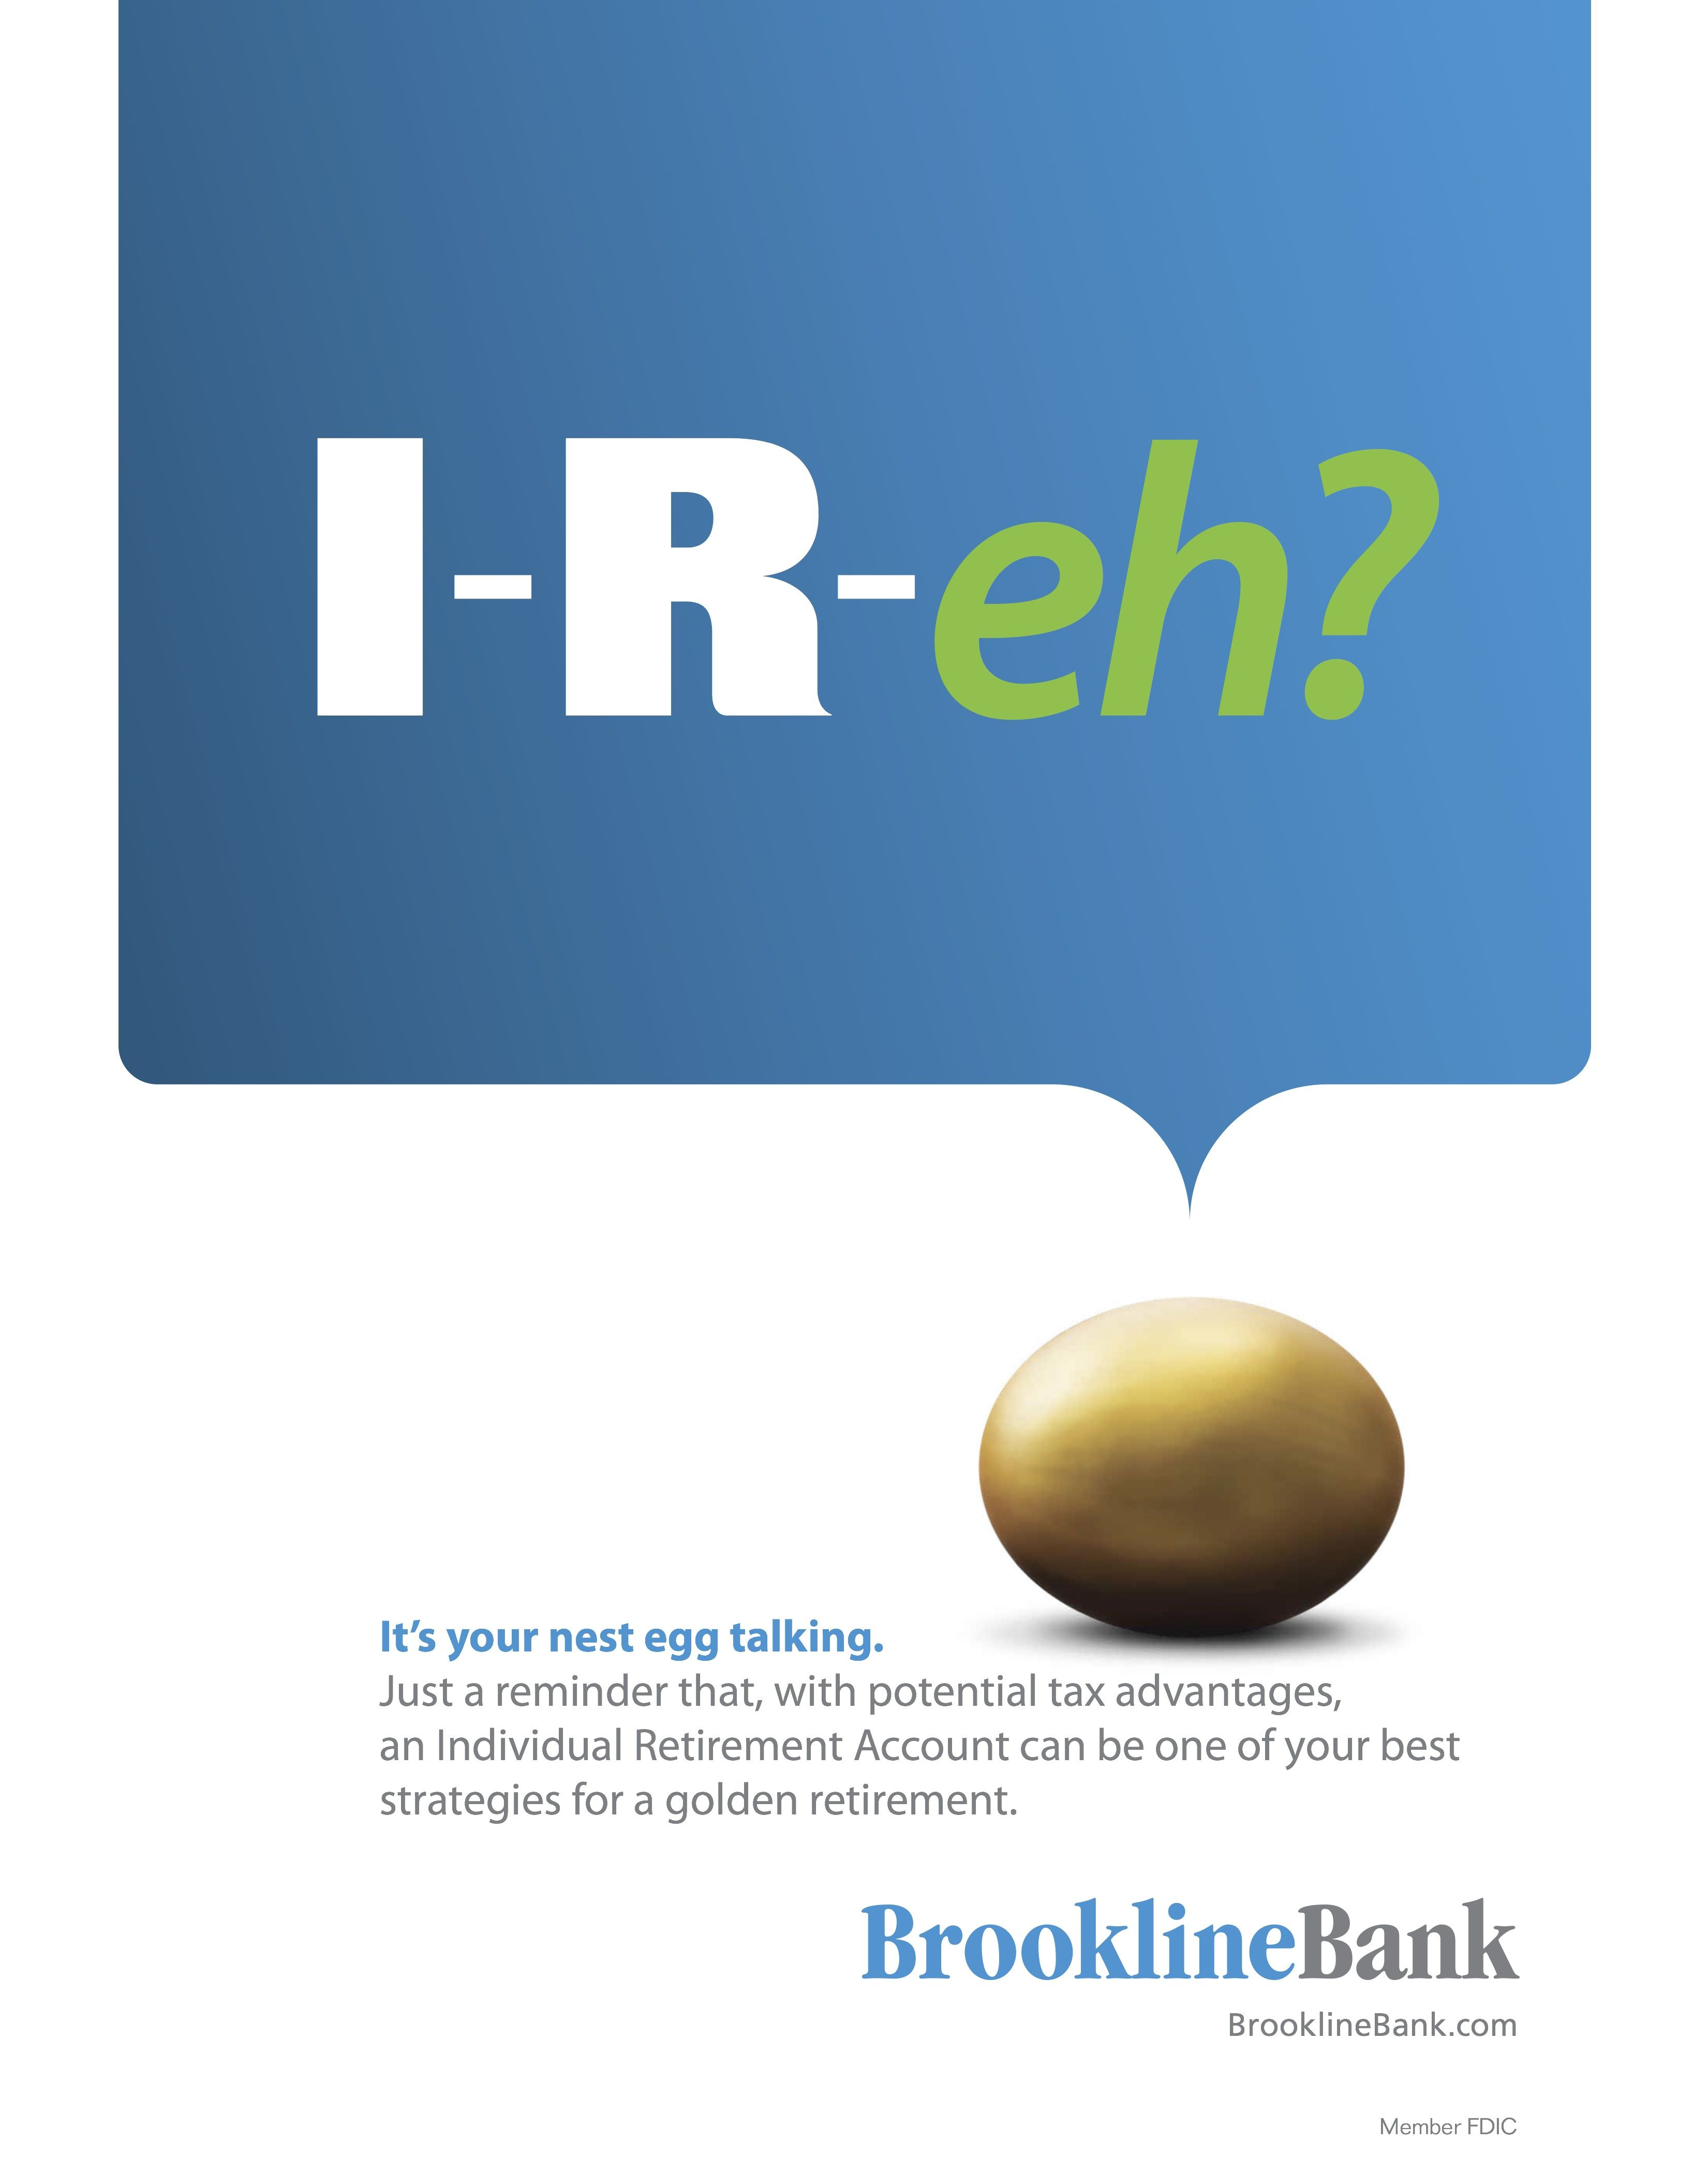 IRA poster for Boston bank client.